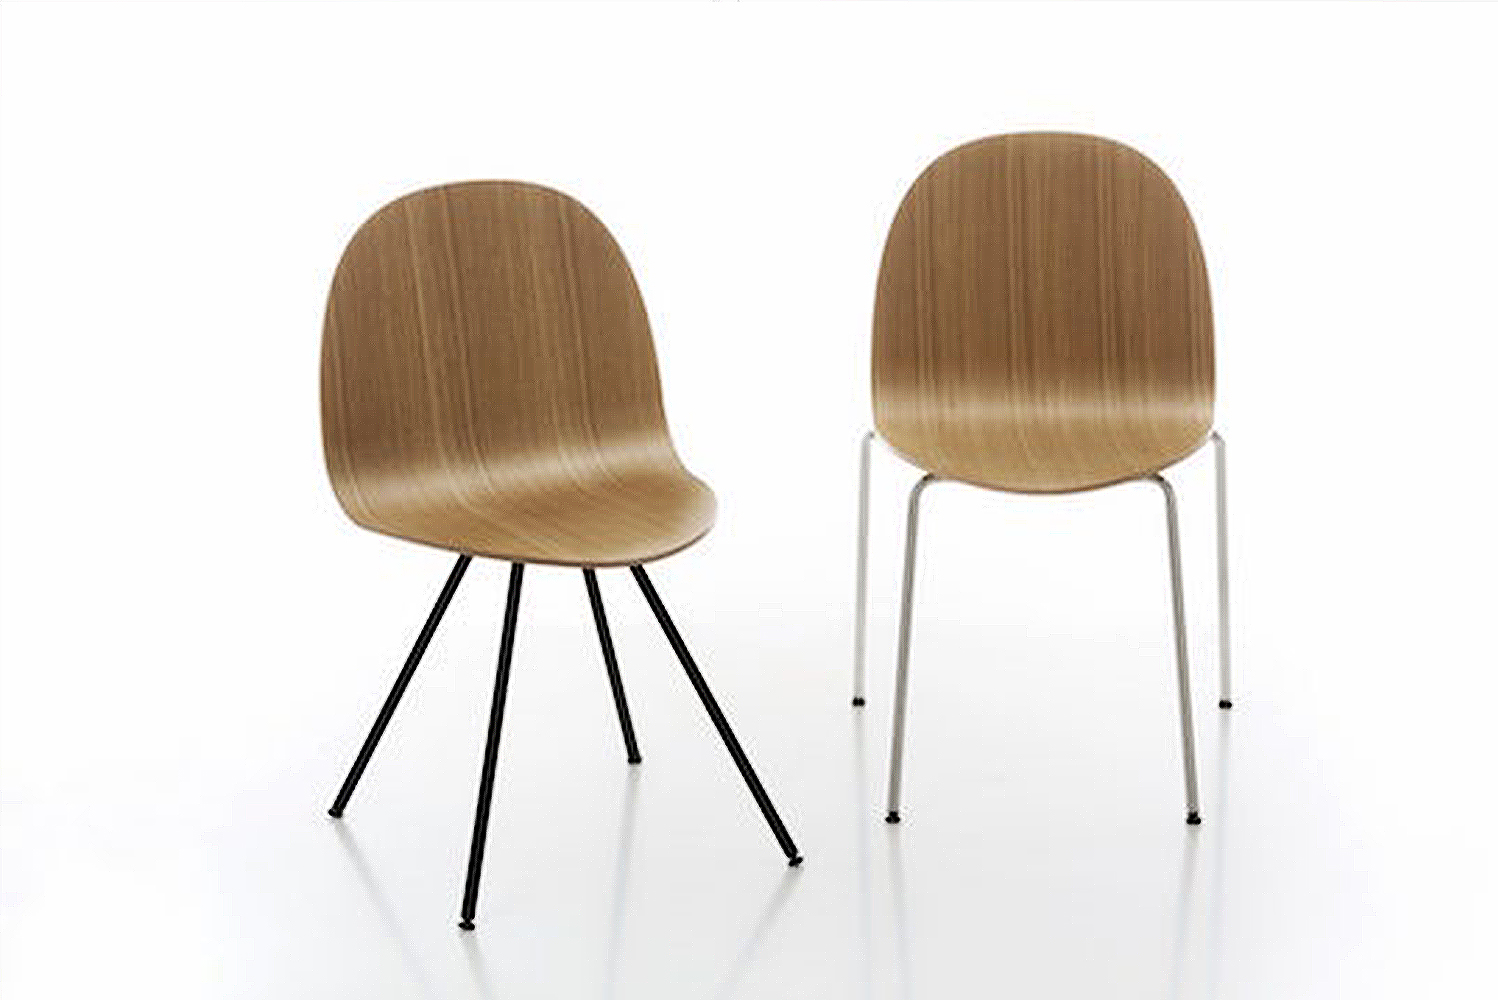 Italian design studio Nichetto Studio launched the Etabeta chair, which has a narrow seat and a large backrest to provide both comfort and form to its users.